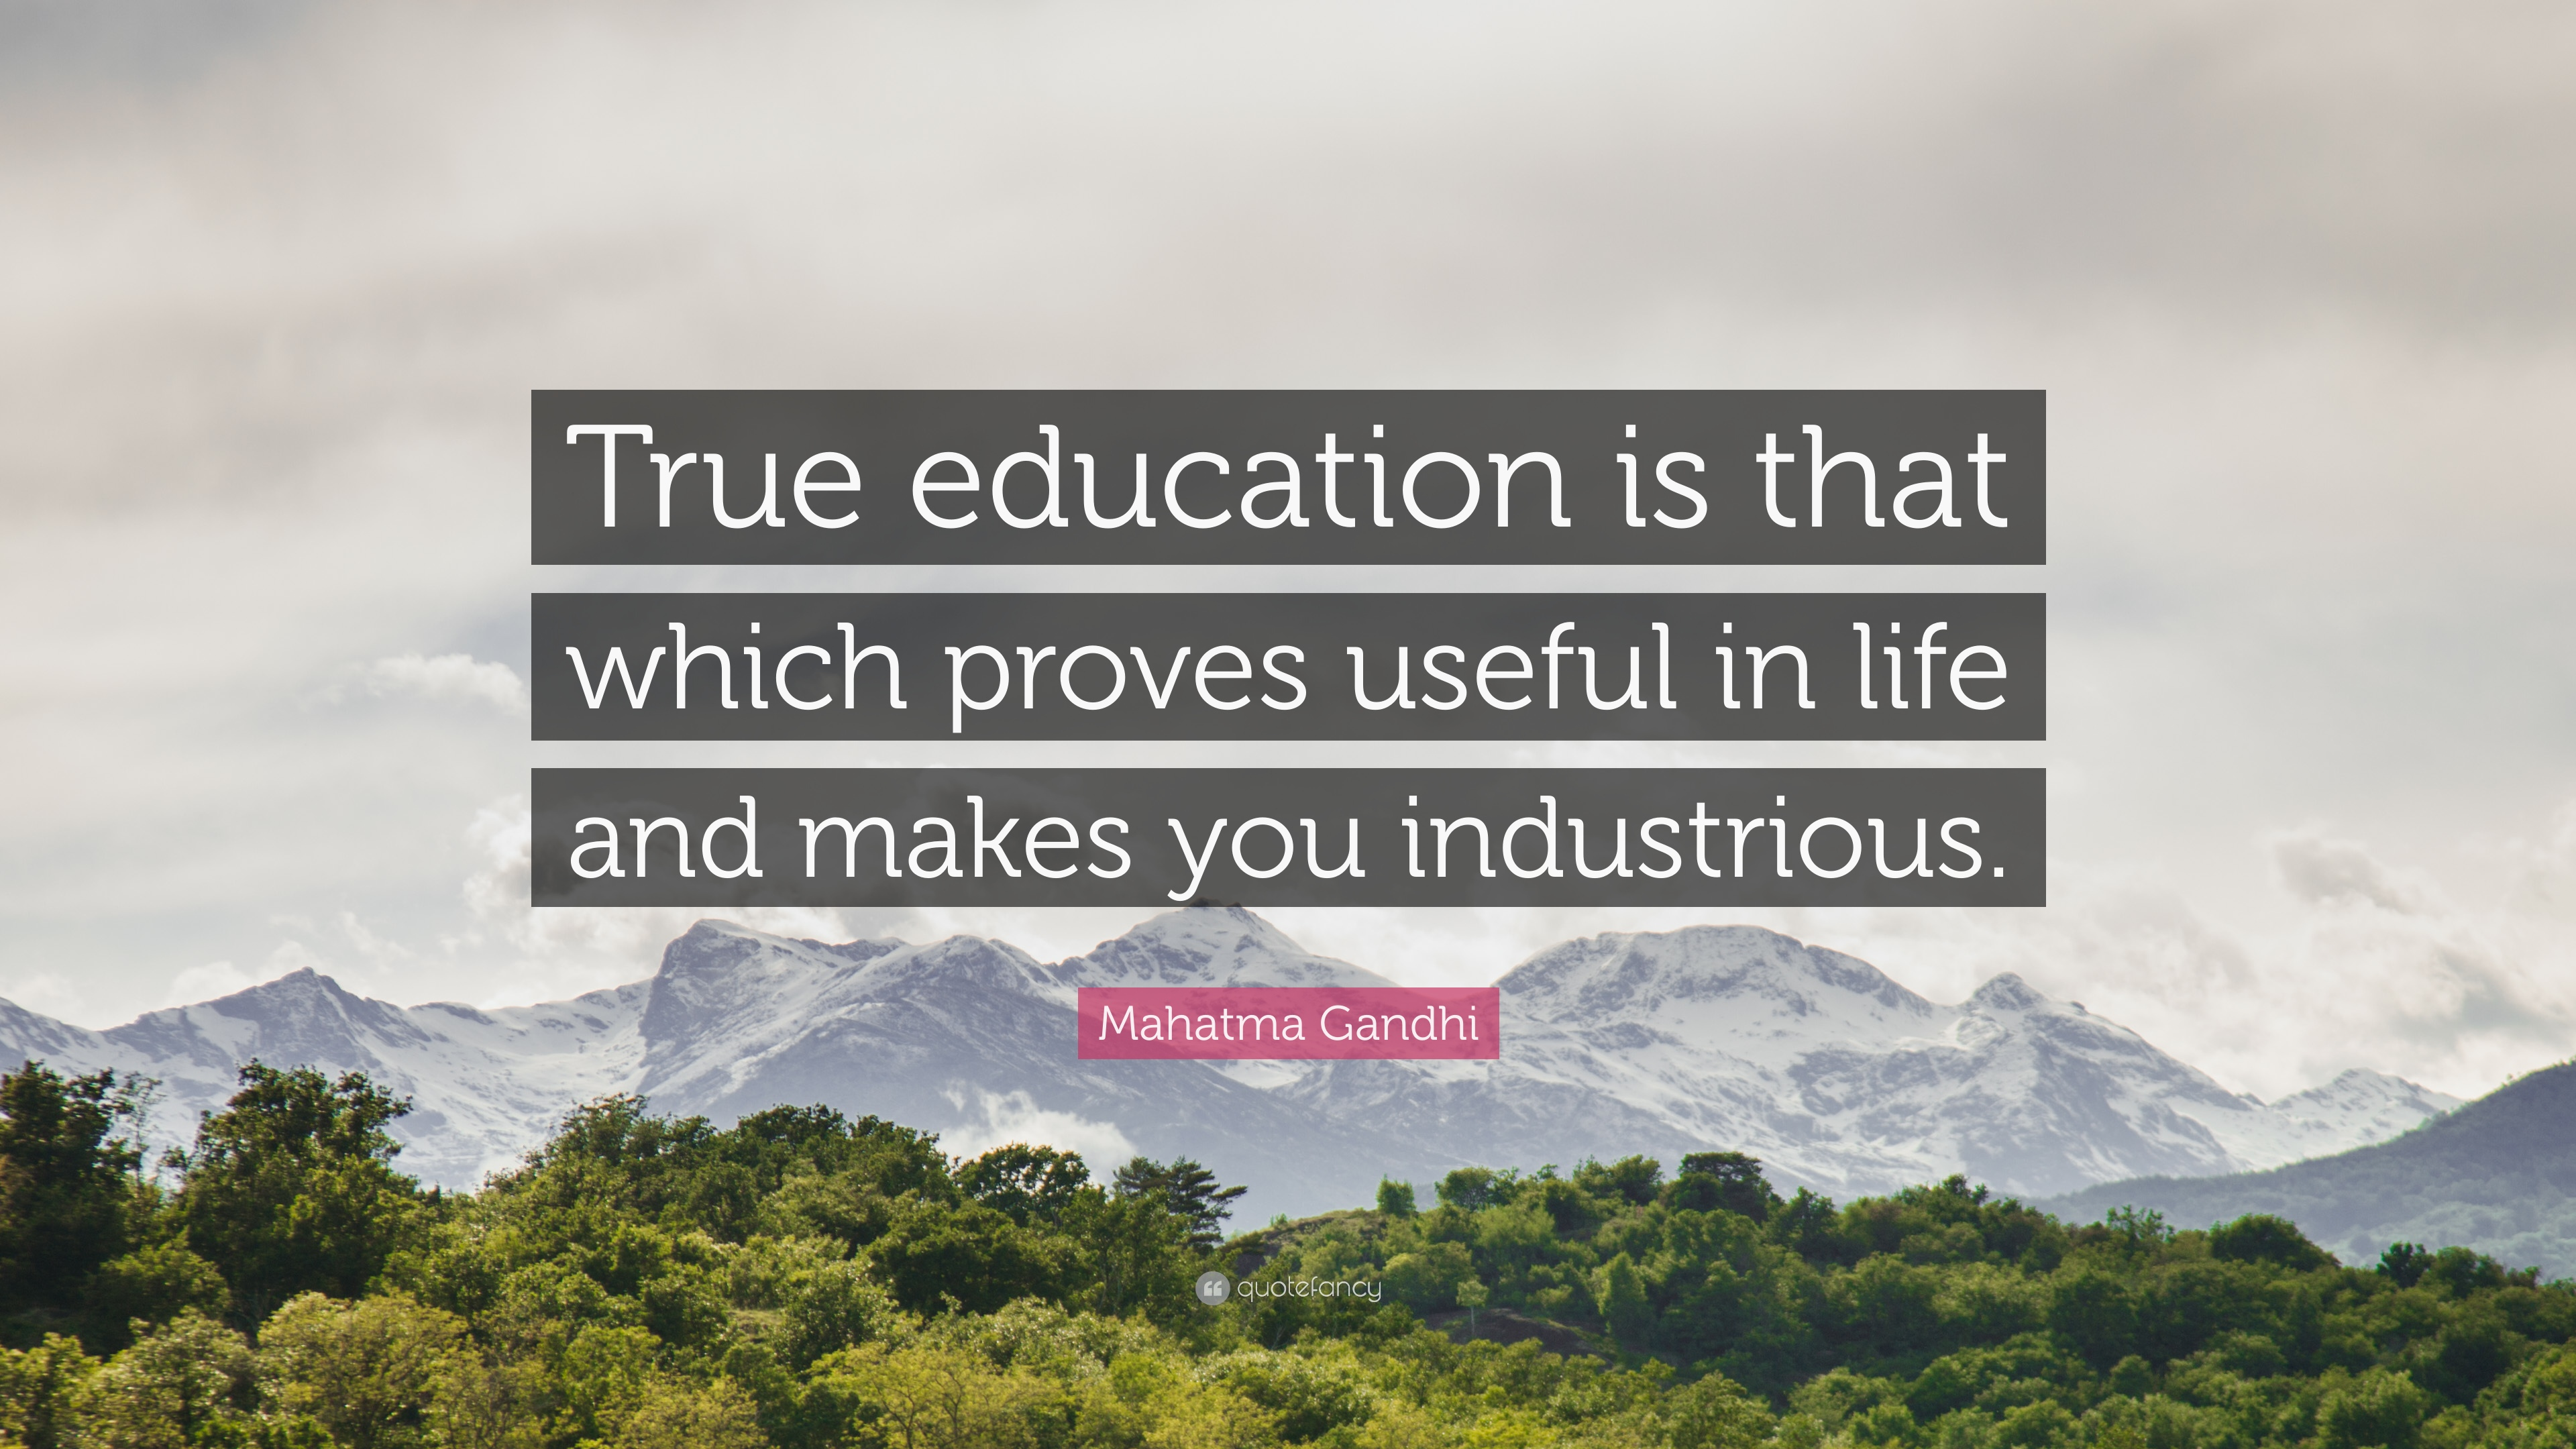 Mahatma Gandhi Quote True Education Is That Which Proves Useful In